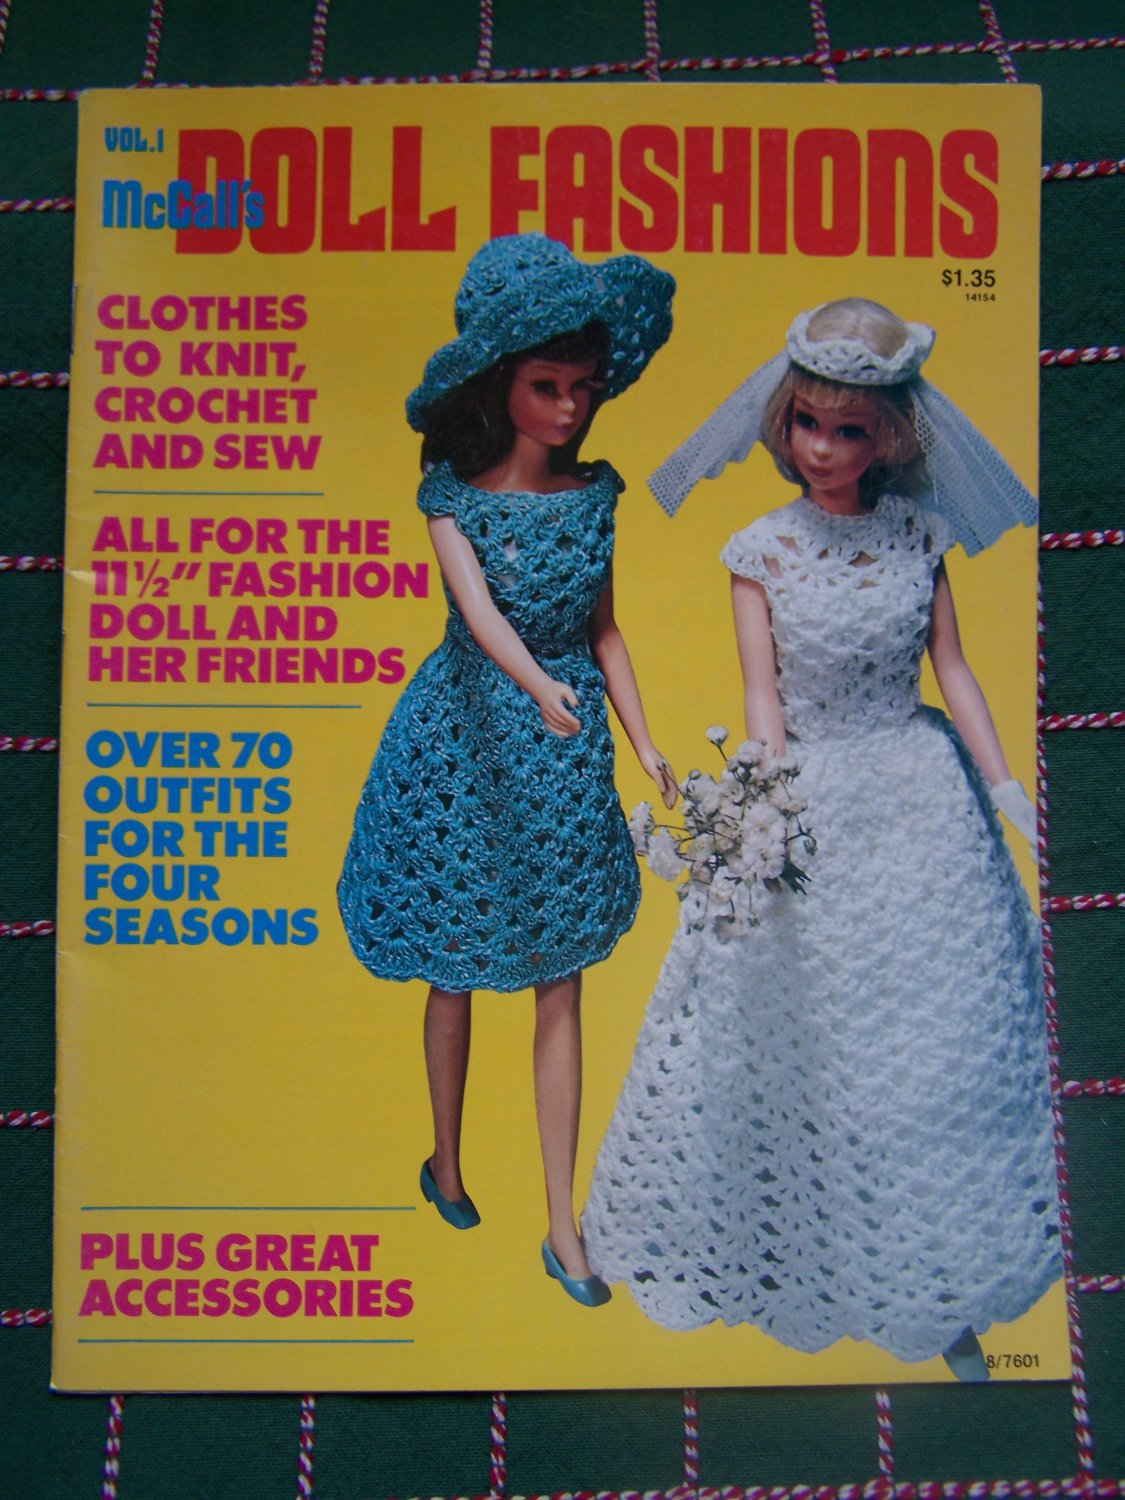 Vintage 1970's Over 70 Barbie Crochet Knitting & Sewing Patterns McCalls Doll Fashions 1